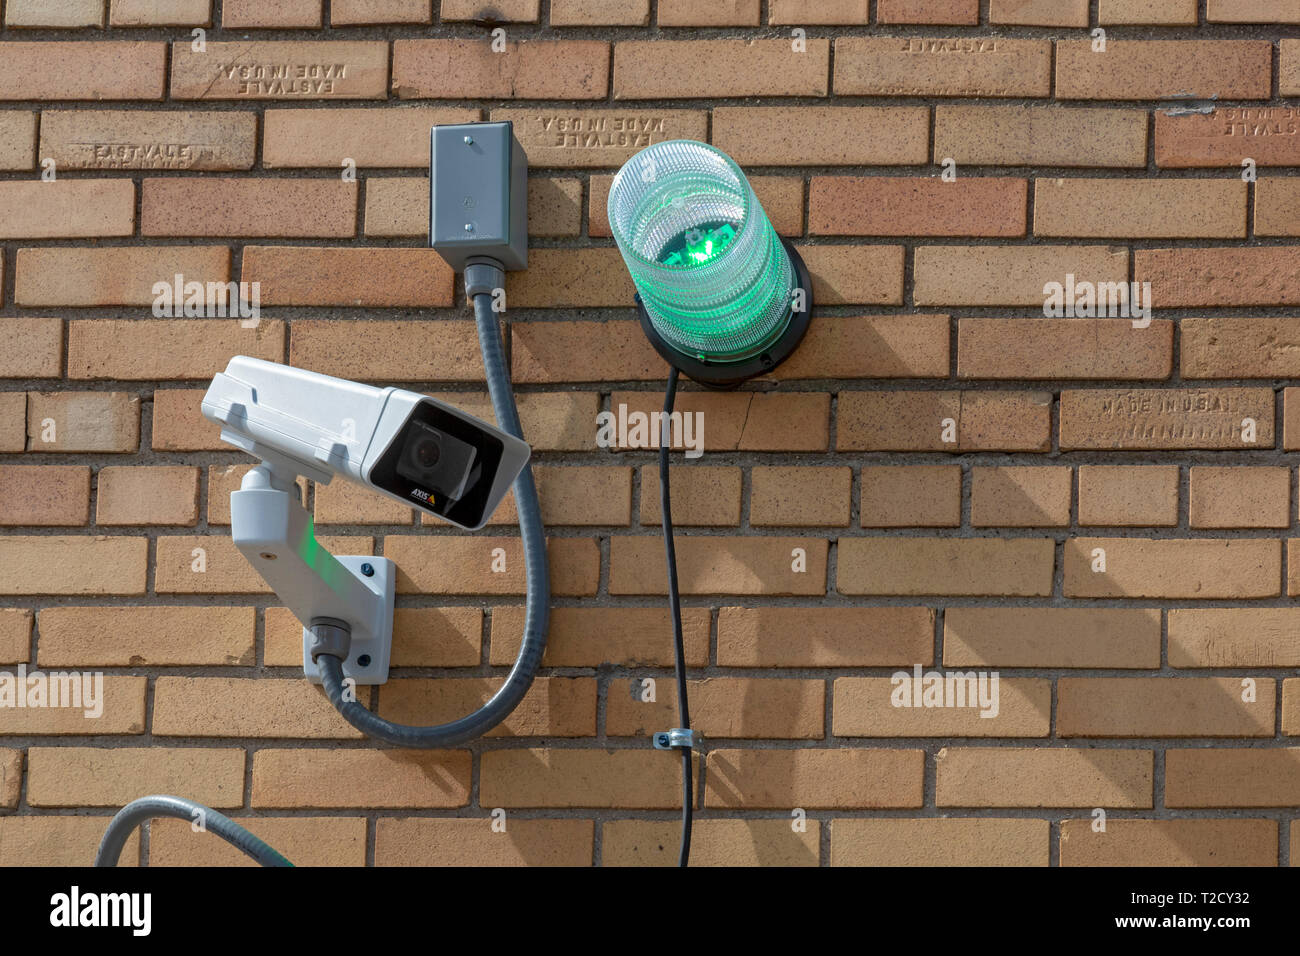 Detroit, Michigan - A green strobe light and surveillance camera outside a business participating in Detroit's Green Light anti-crime program. The pol - Stock Image